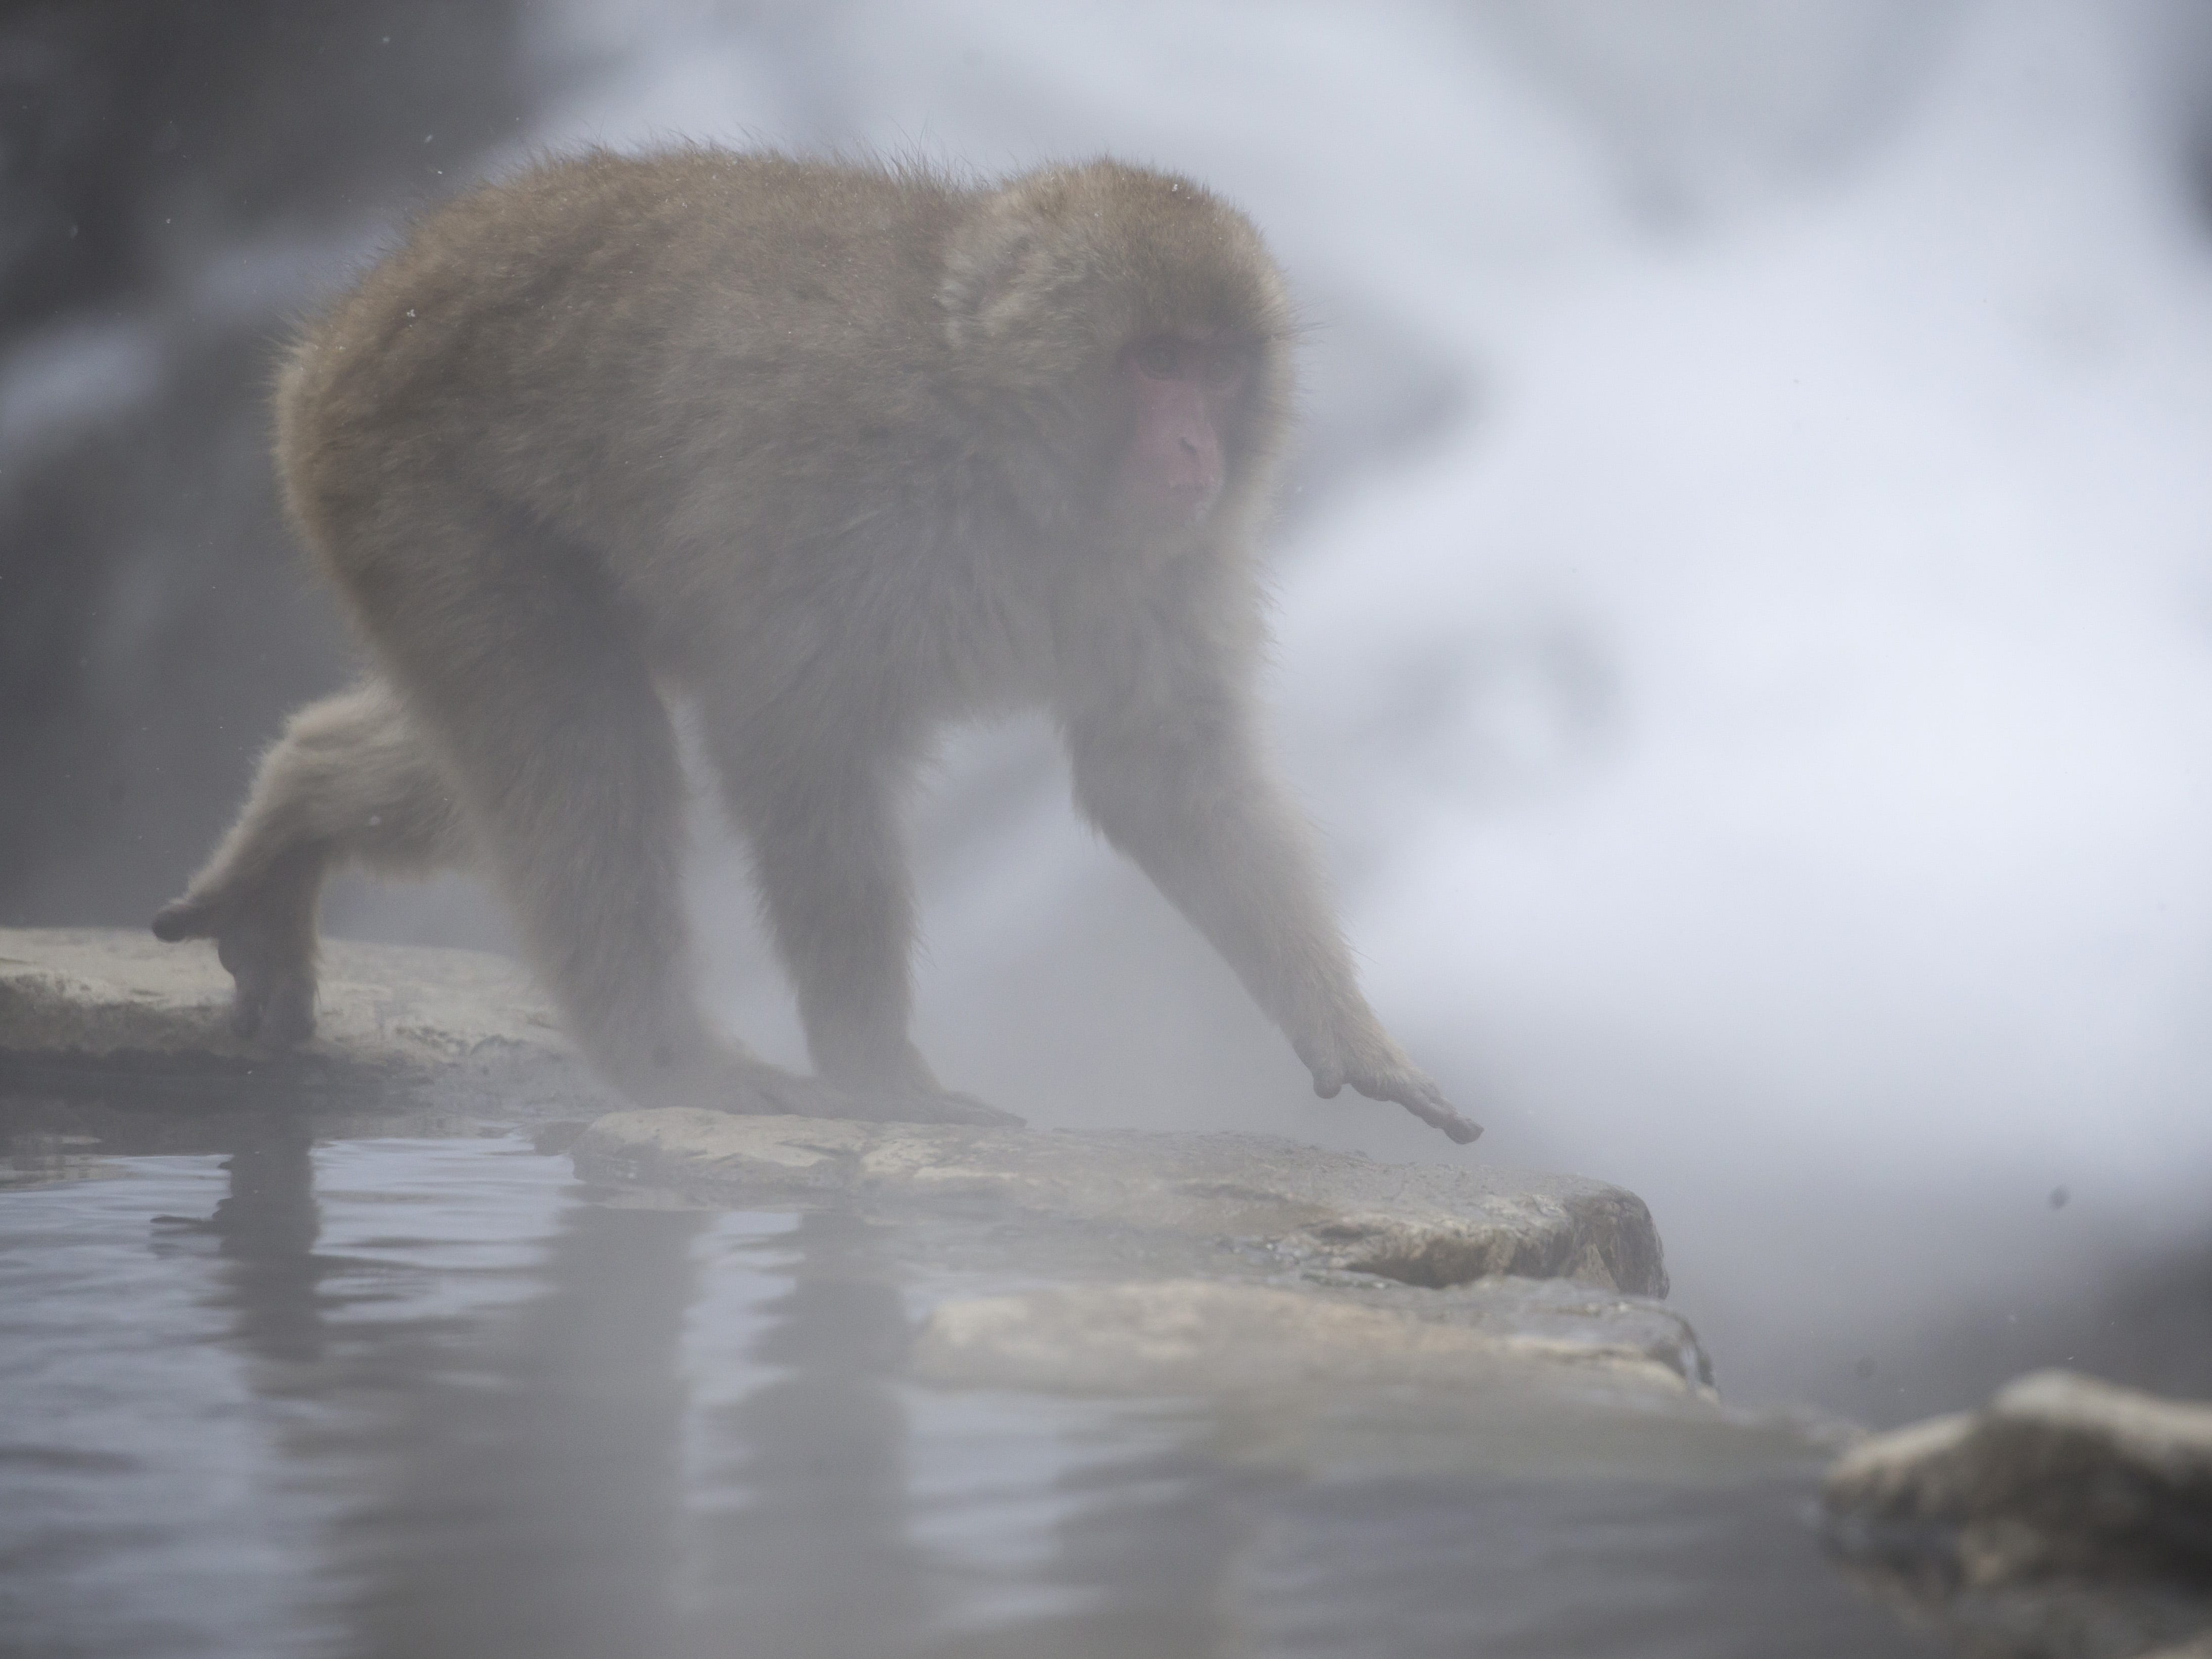 YAMANOUCHI, JAPAN - FEBRUARY 08: A Macaque monkey  walks near a hot spring at the Jigokudani Yaen-koen wild Macaque monkey park on February 8, 2019 in Yamanouchi, Japan. The wild Japanese macaques are known as snow monkeys, according to the park's official website. (Photo by Tomohiro Ohsumi/Getty Images) ORG XMIT: 775292339 ORIG FILE ID: 1128215836